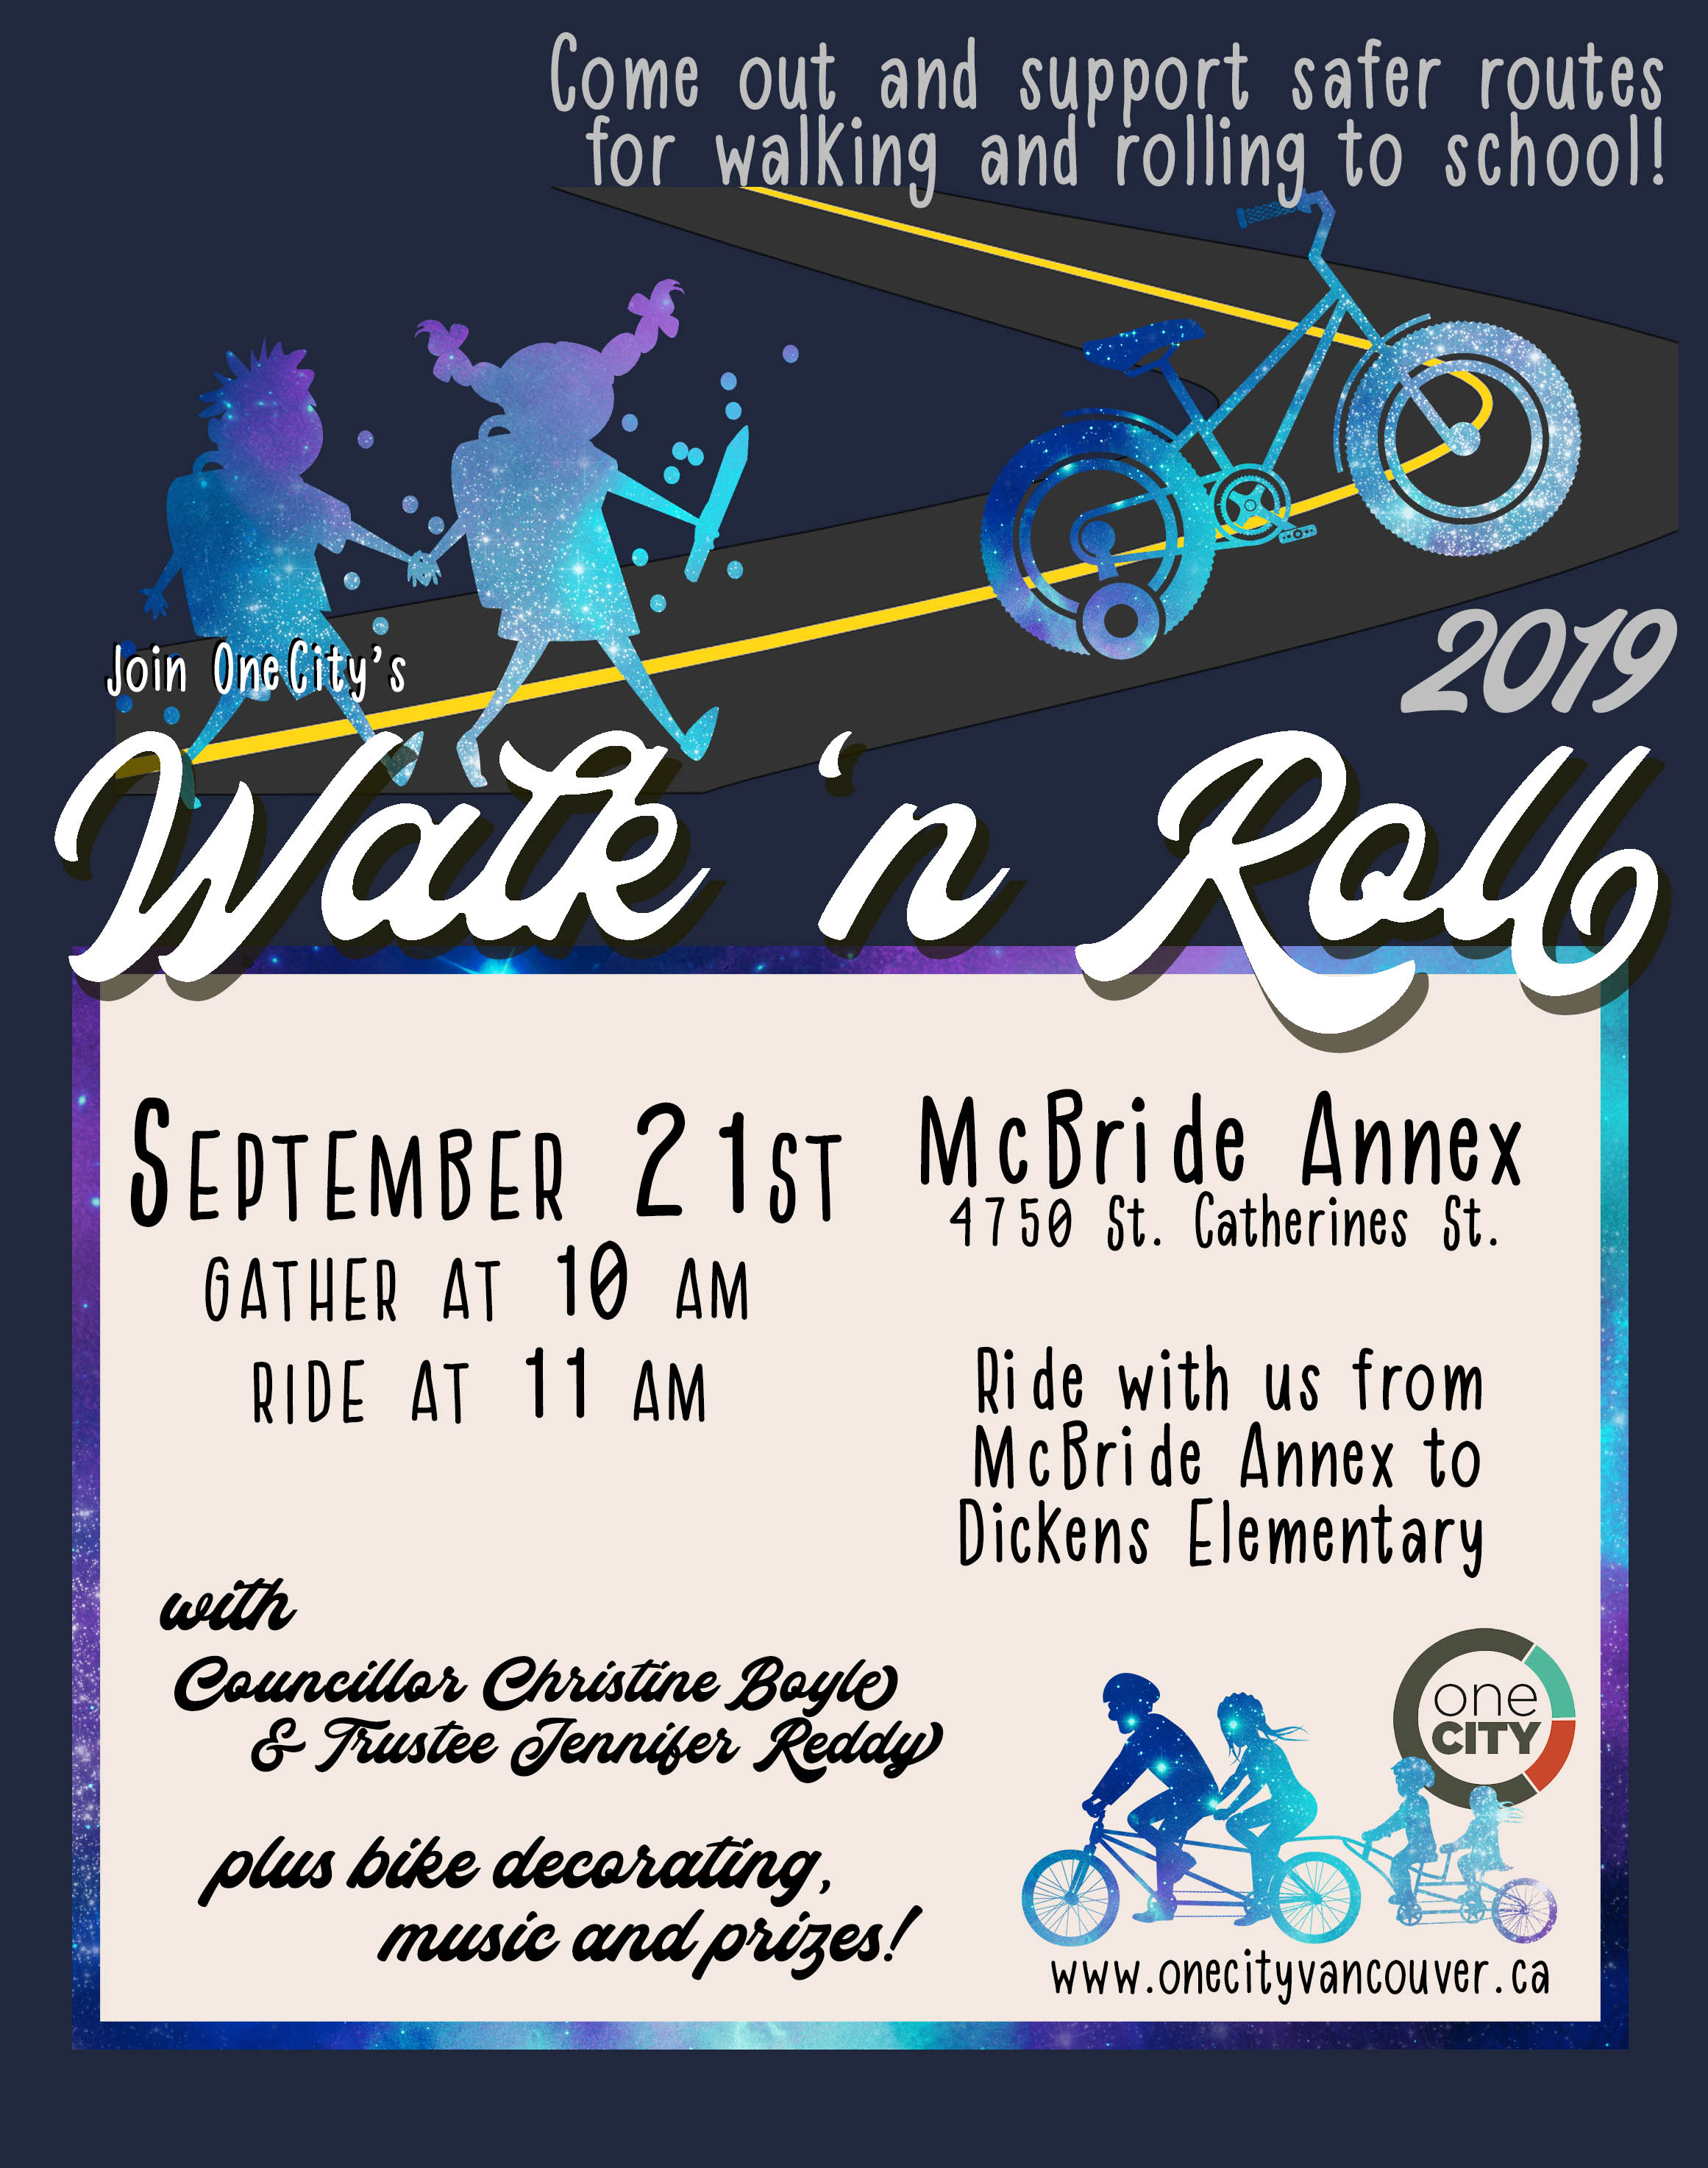 Walk 'n Roll Event Poster